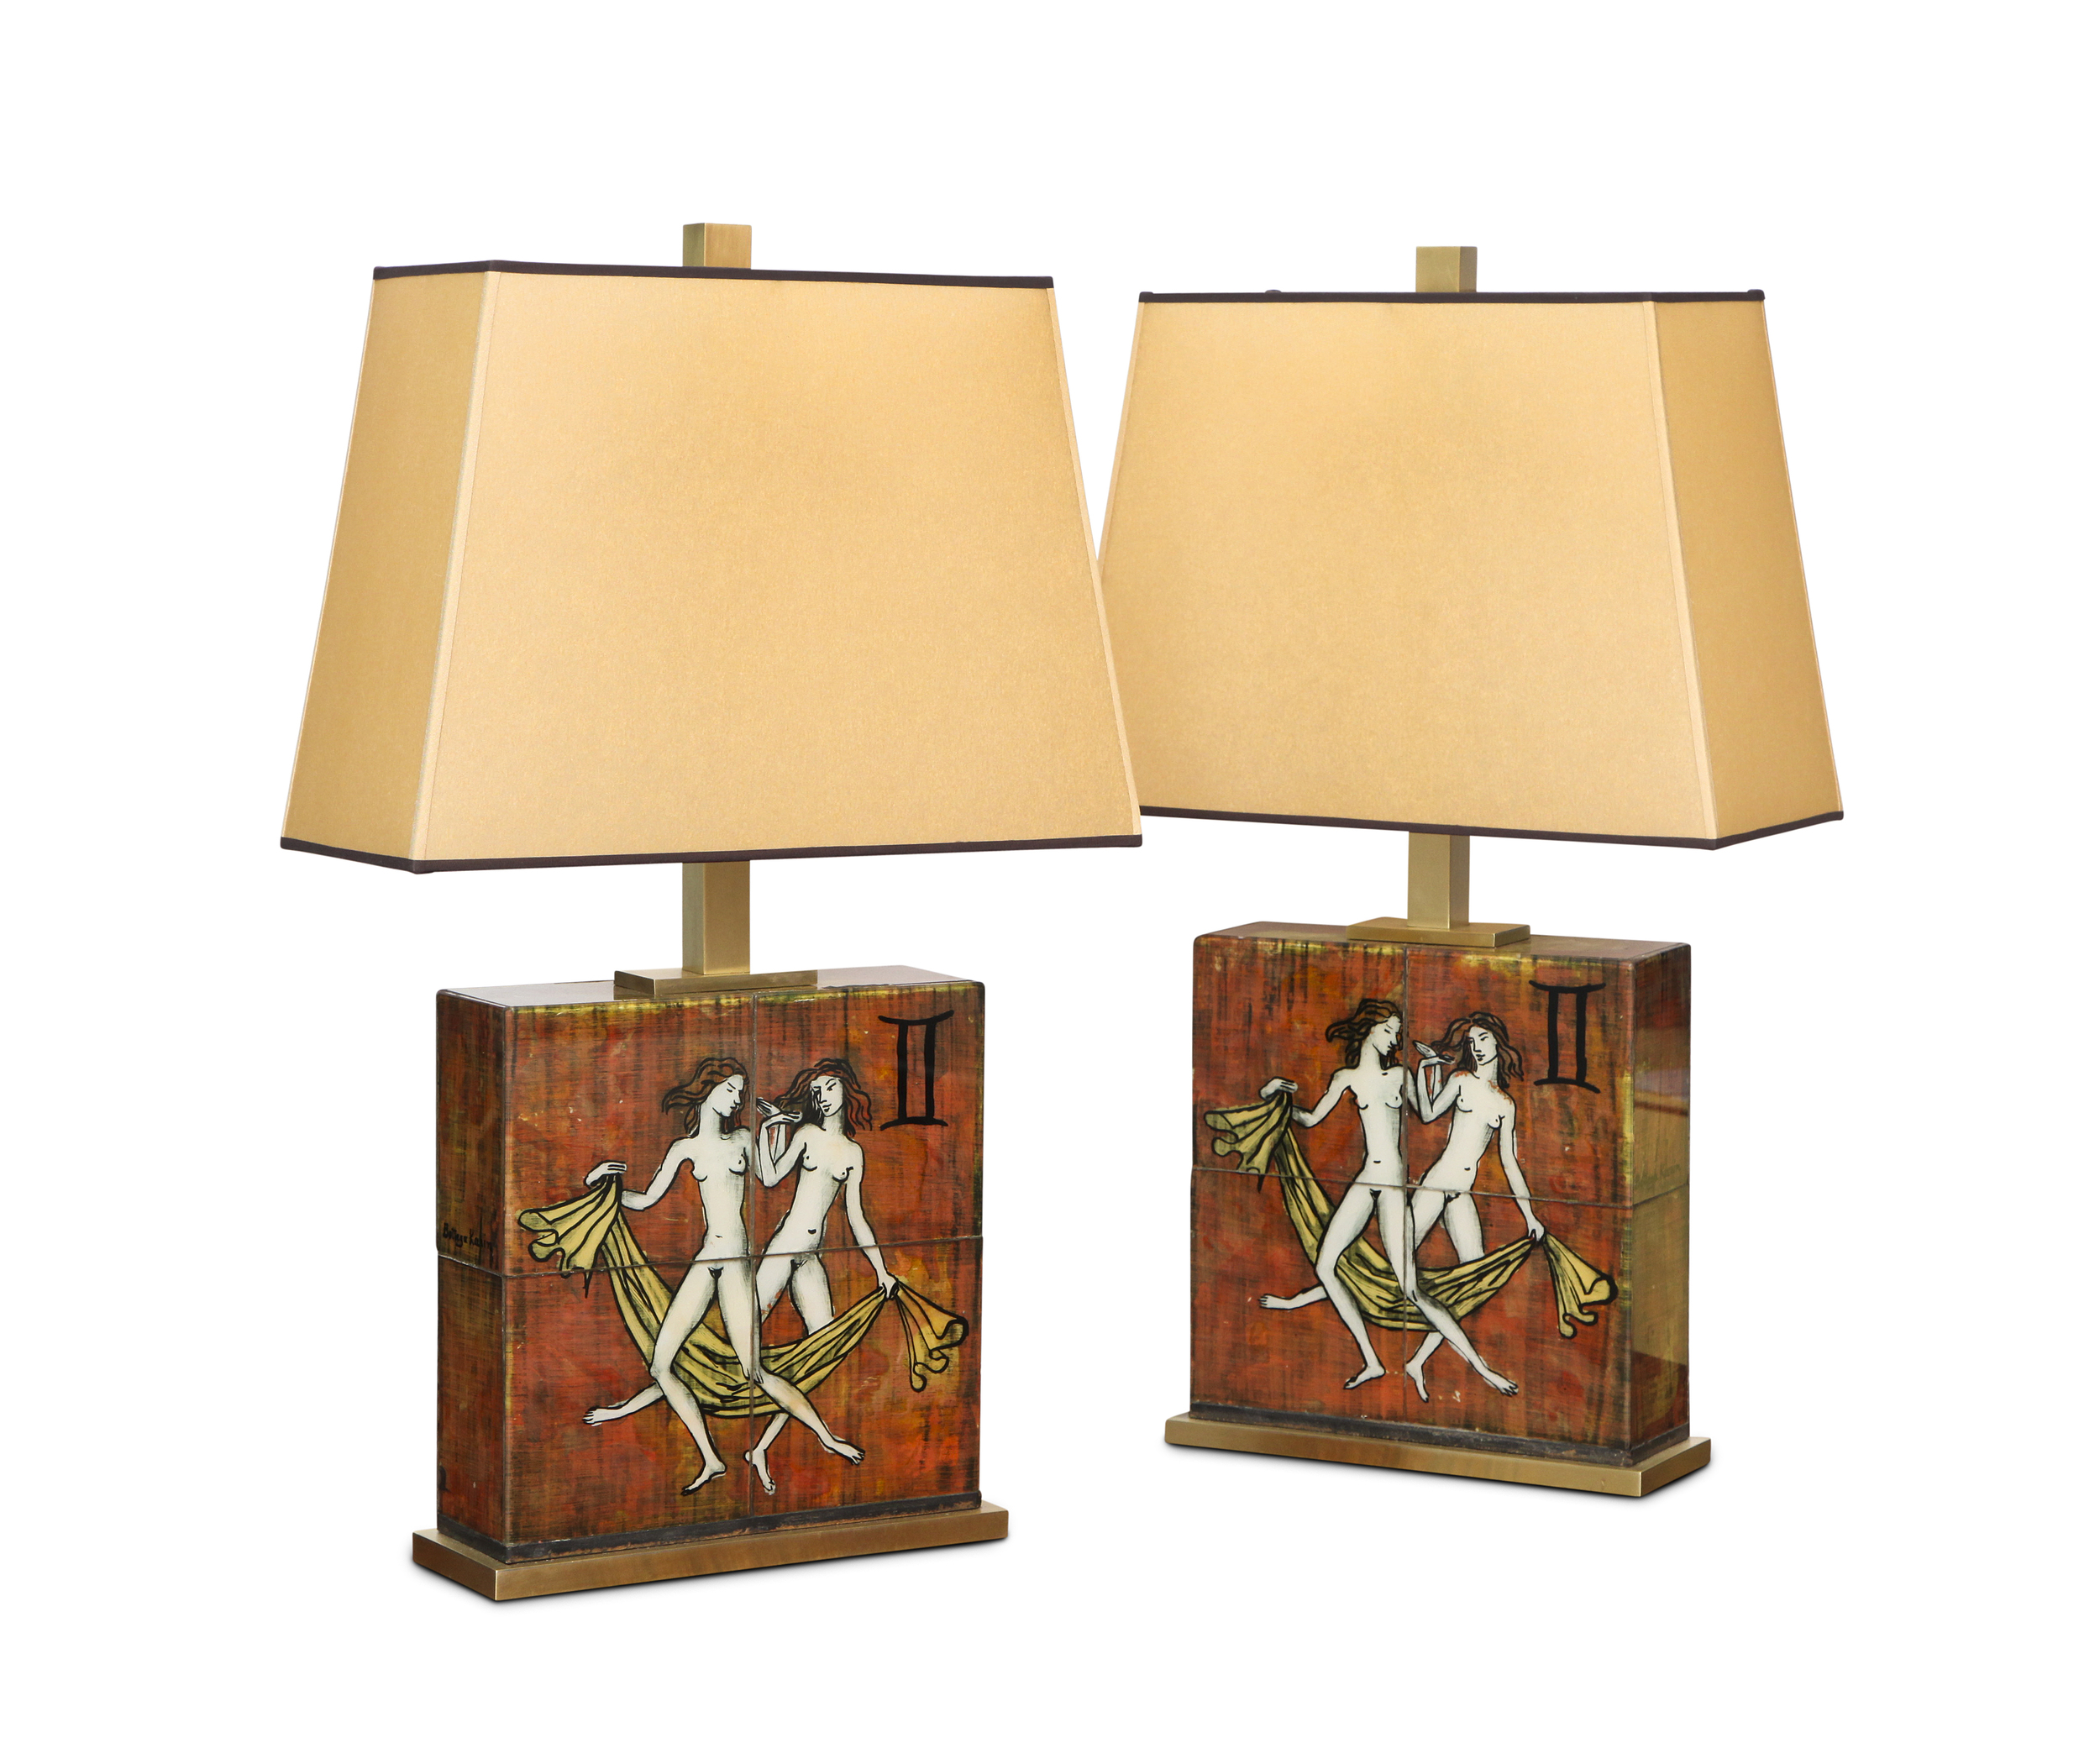 Unique Pair Of Table Lamps By Paul Laszlo And Karin Van Leyden